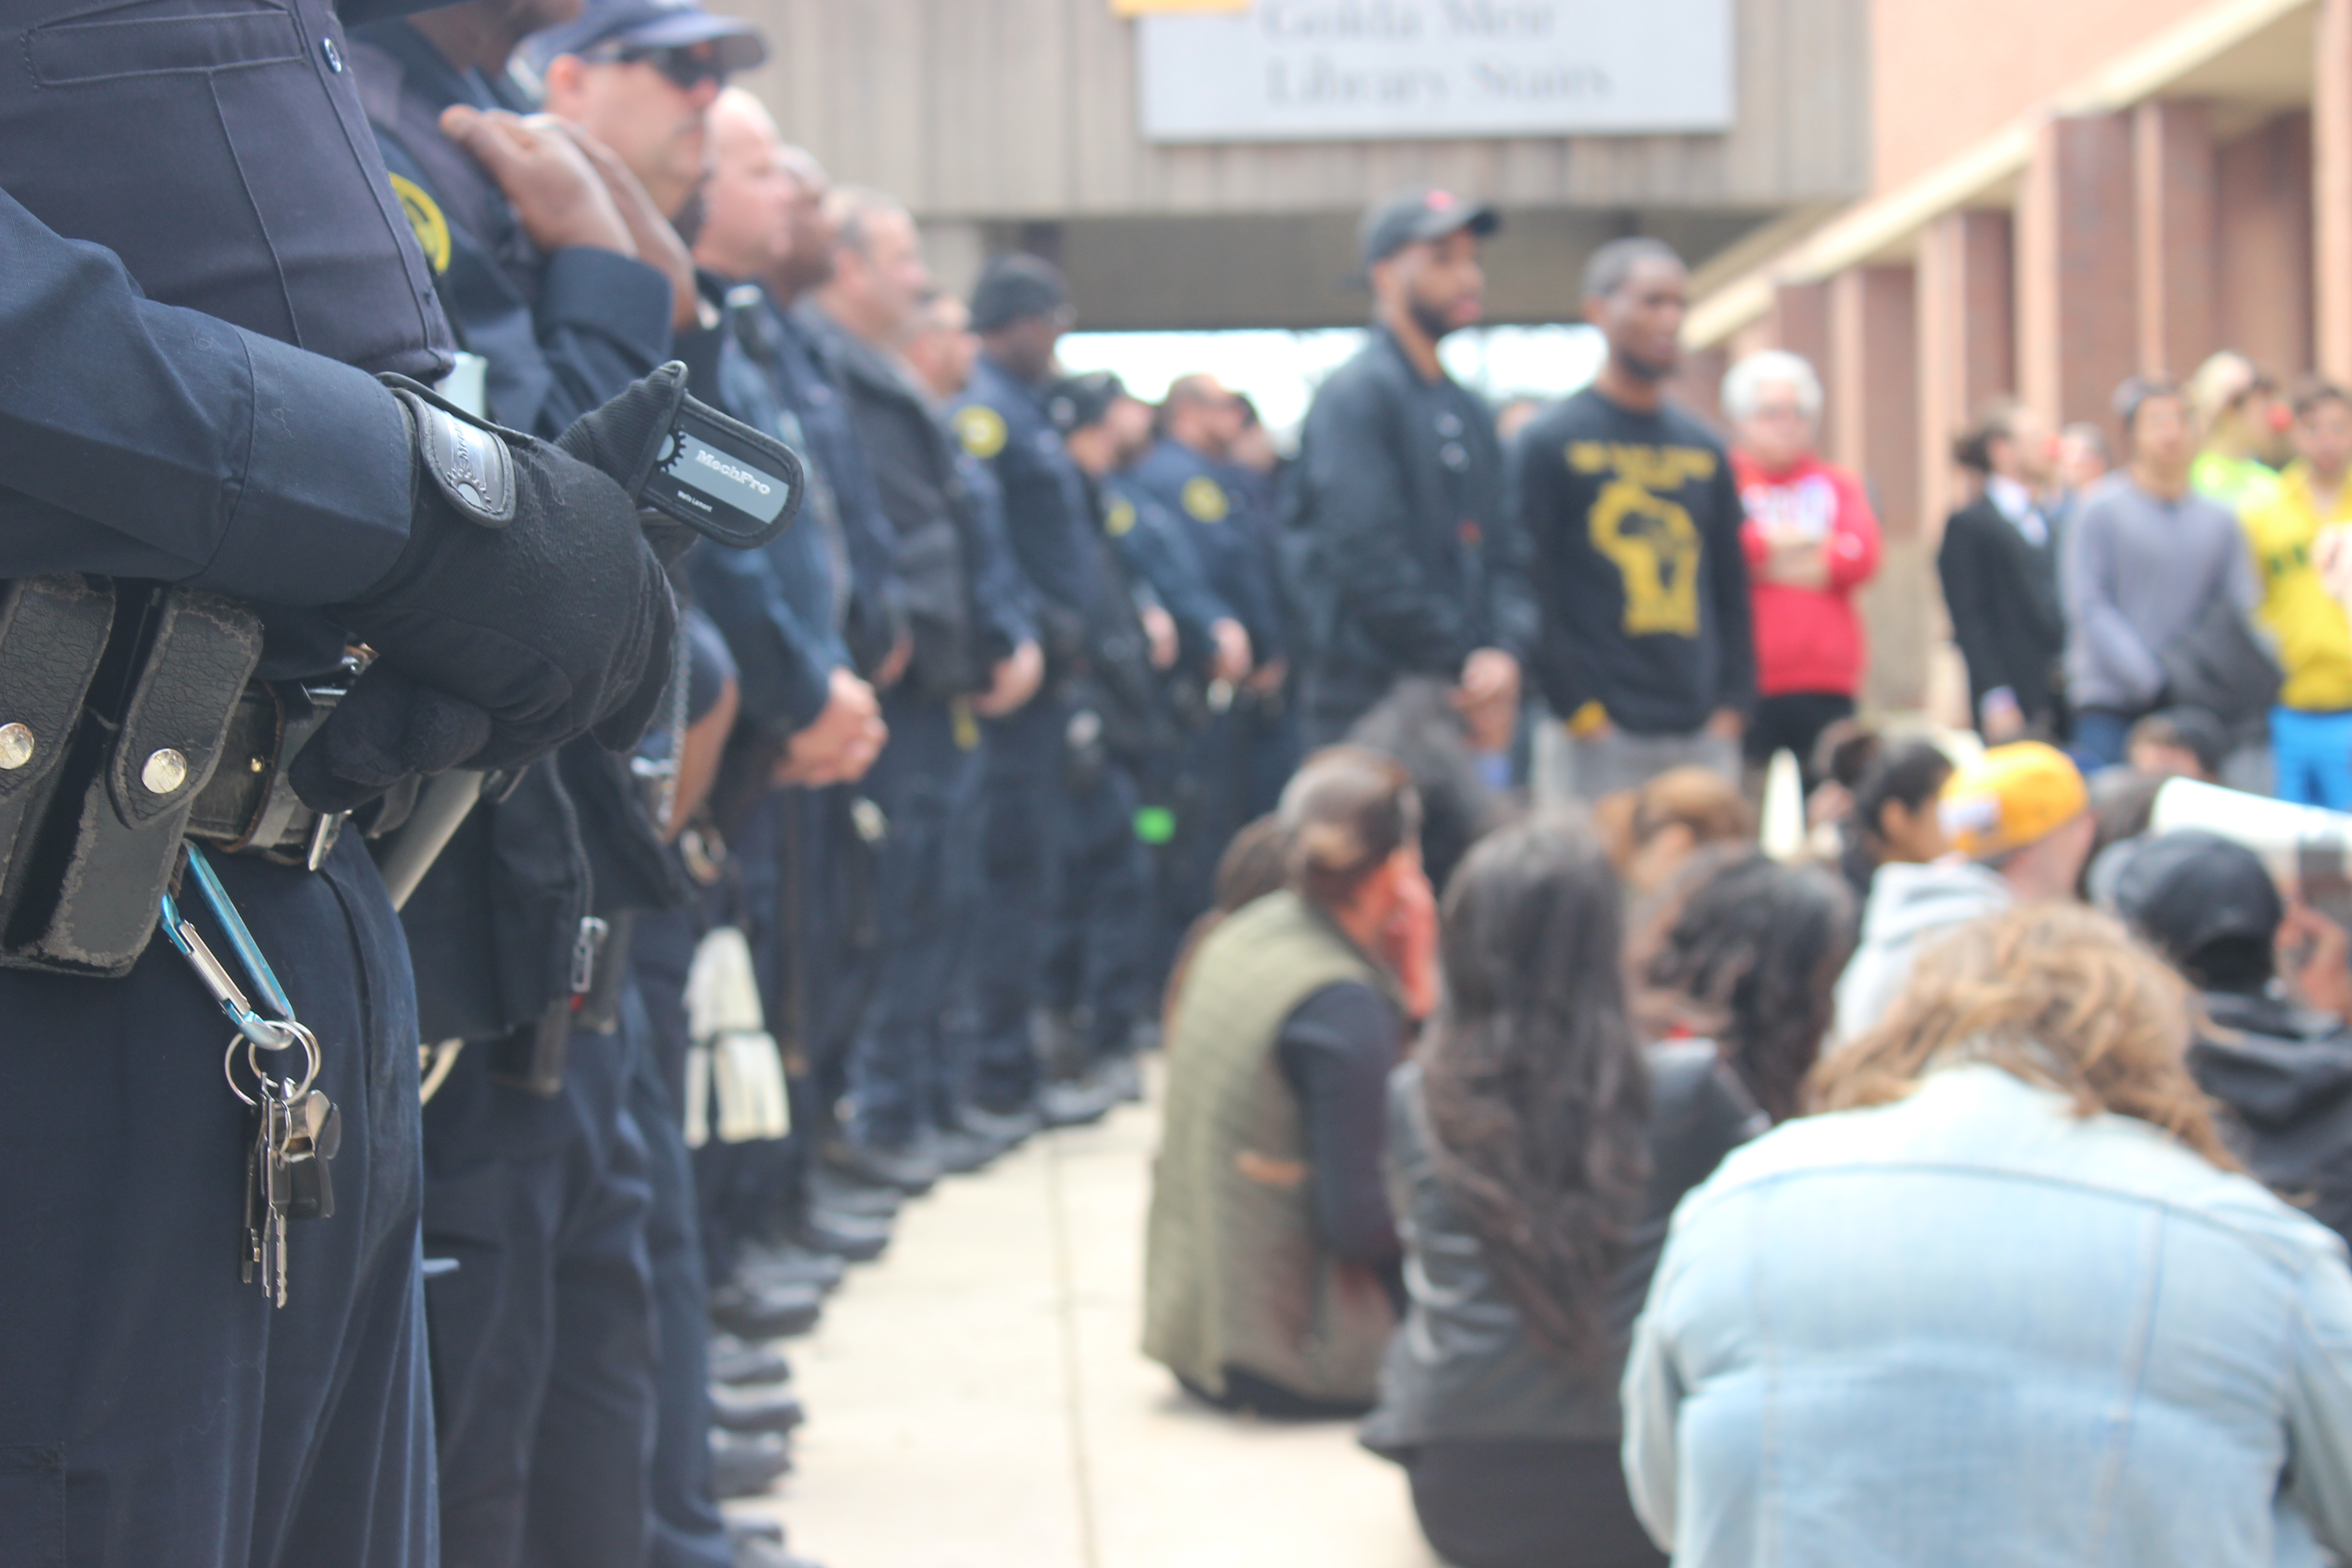 Police and protesters were in close quarters. Photo by Brandon Hartman.